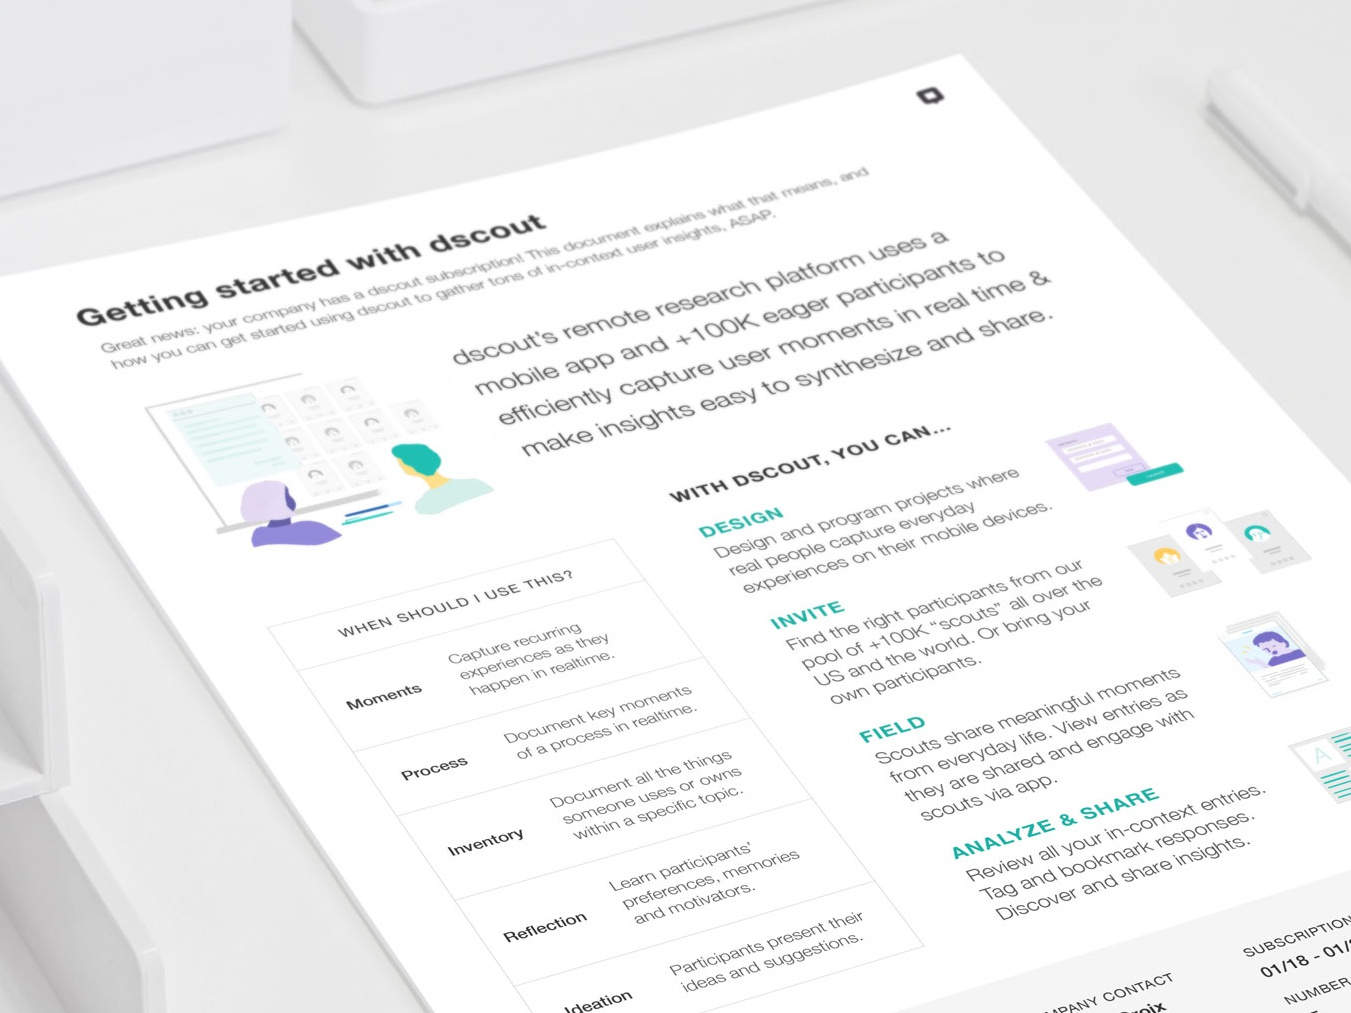 dscout one pagers illustration onboarding illustration graphic design layout design design overview getting started indesign worksheet marketing collateral layout dscout customer experience sales doc one pager